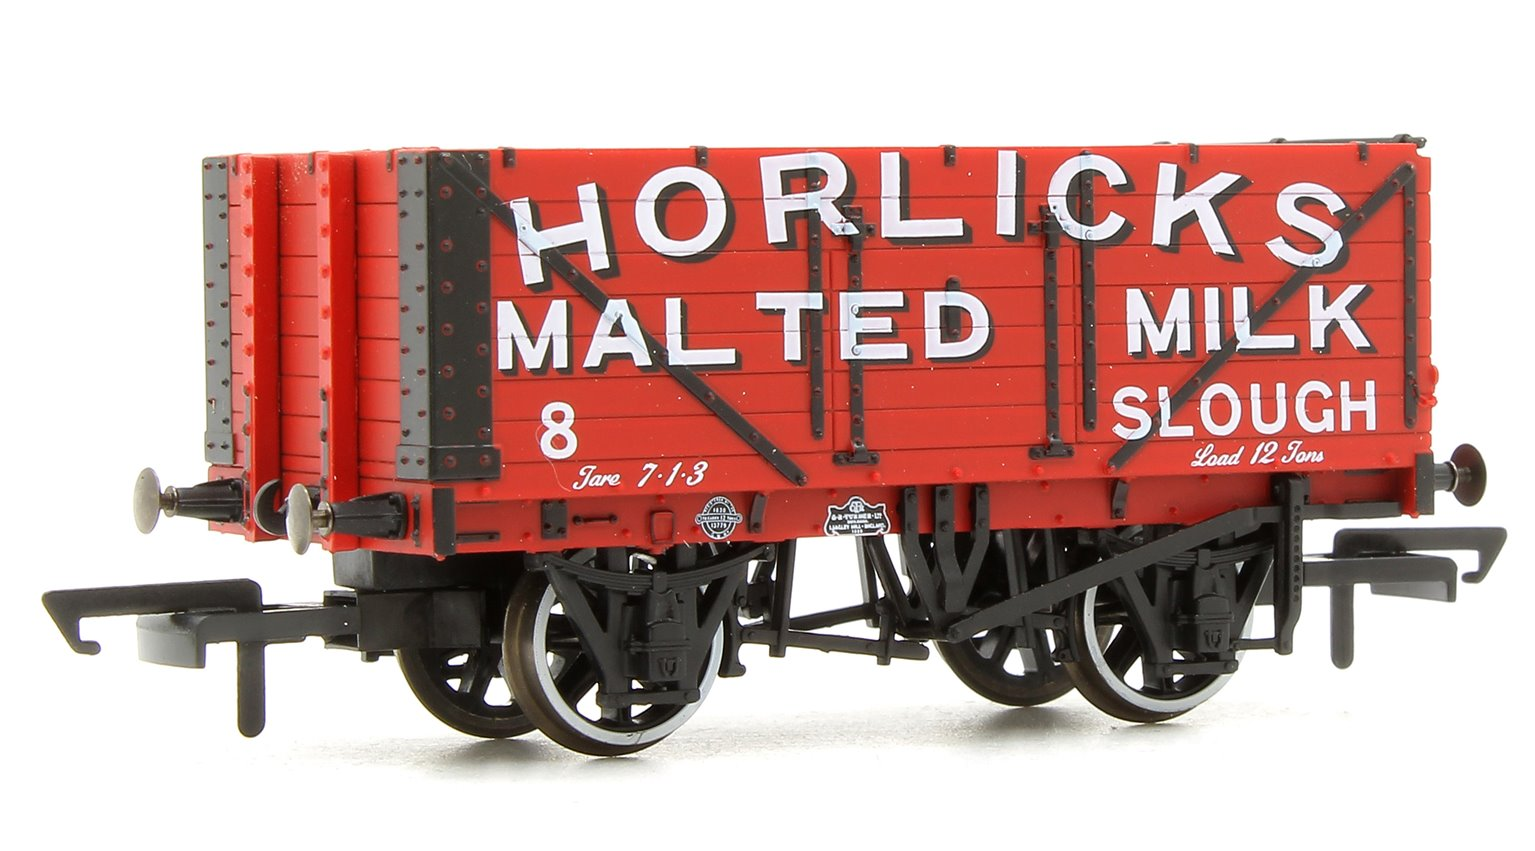 7 Plank Mineral Wagon - Horlicks Malted Milk Slough 8